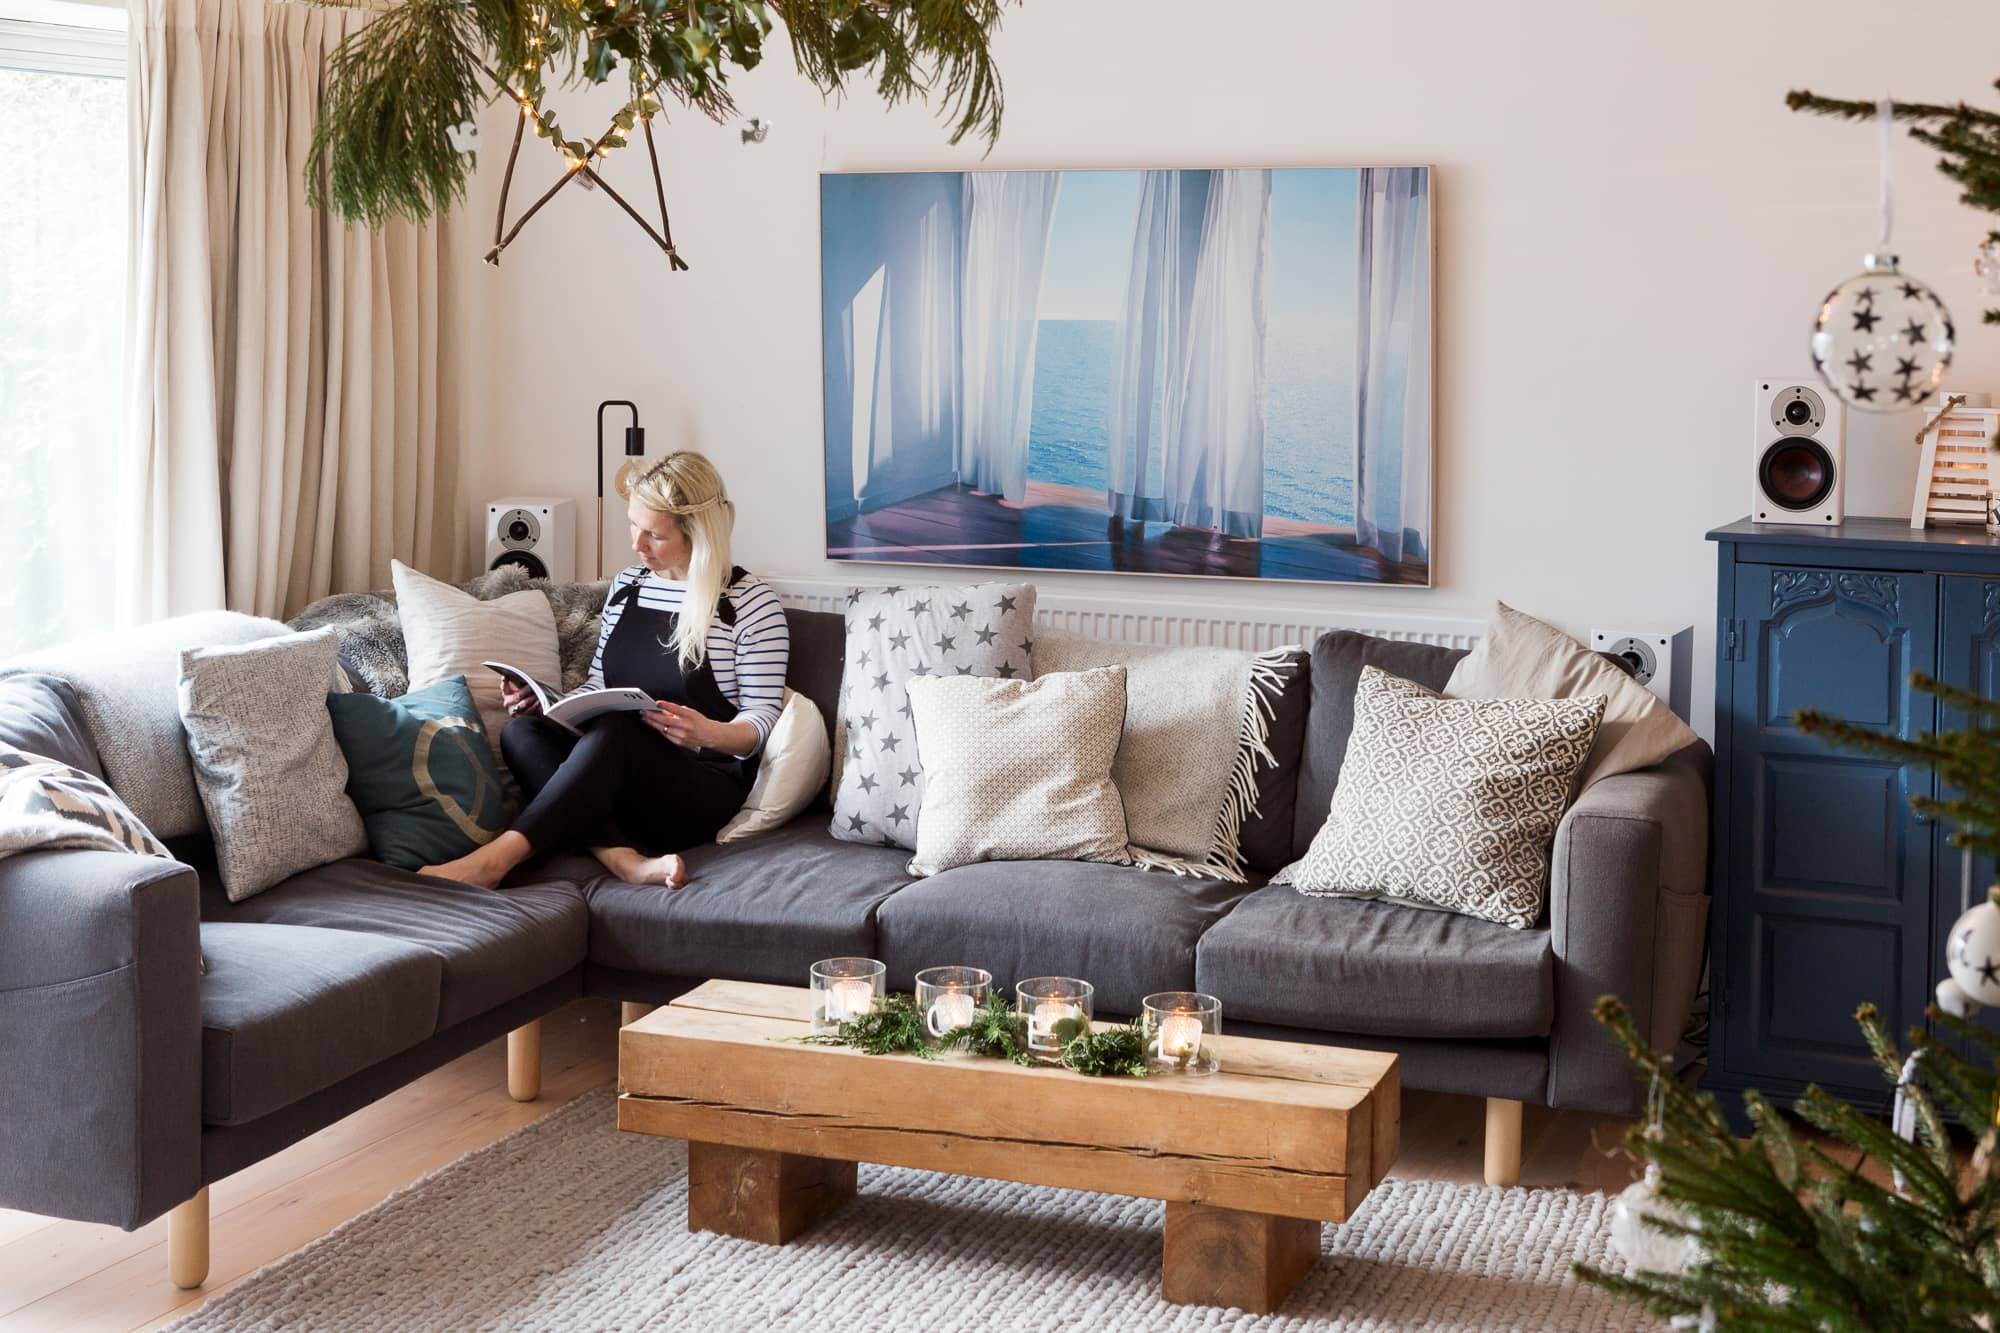 How To Make Your Old Ugly Sofa Look New Again Apartment Therapy